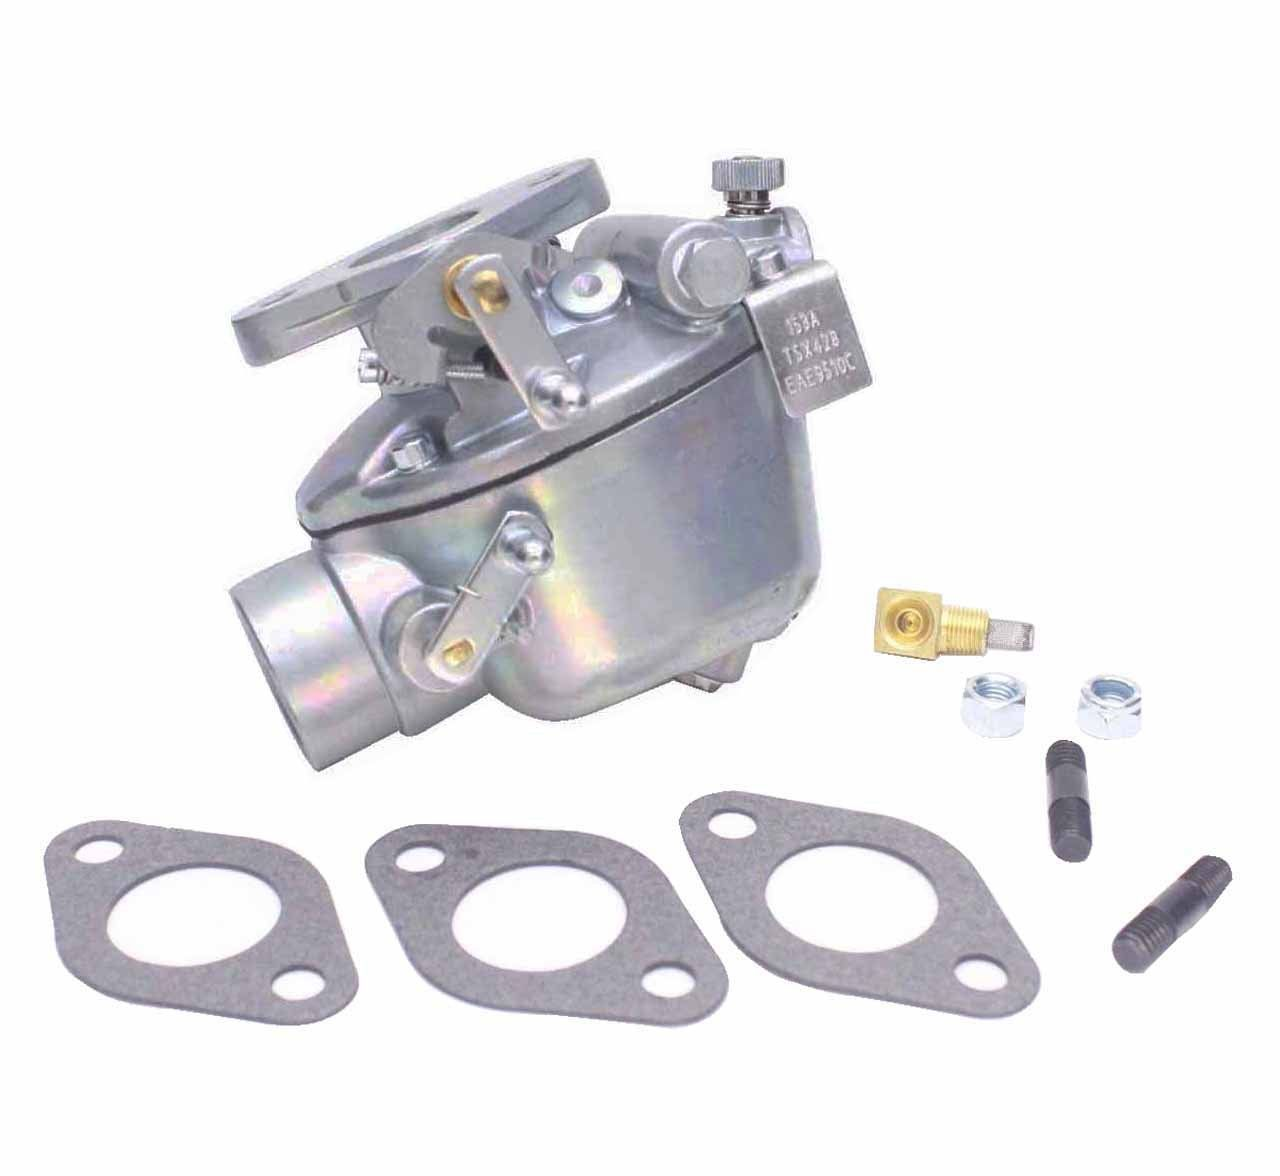 Fyiyi New Eae9510c Carburetor For Ford Naa Jubilee 1953 54 Tractor